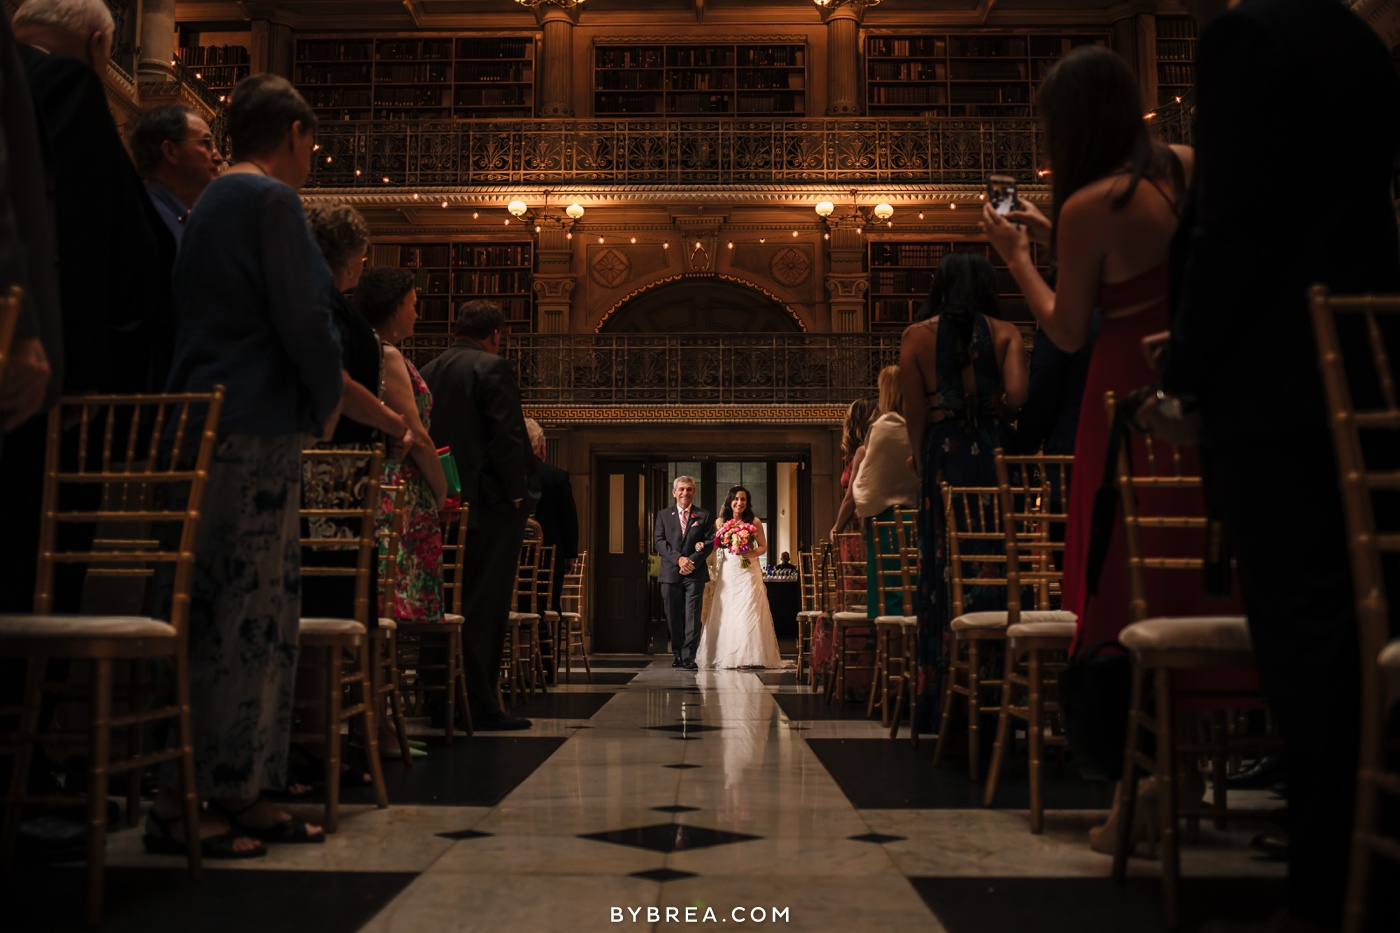 George Peabody Library wedding photo bride entering while guests stand